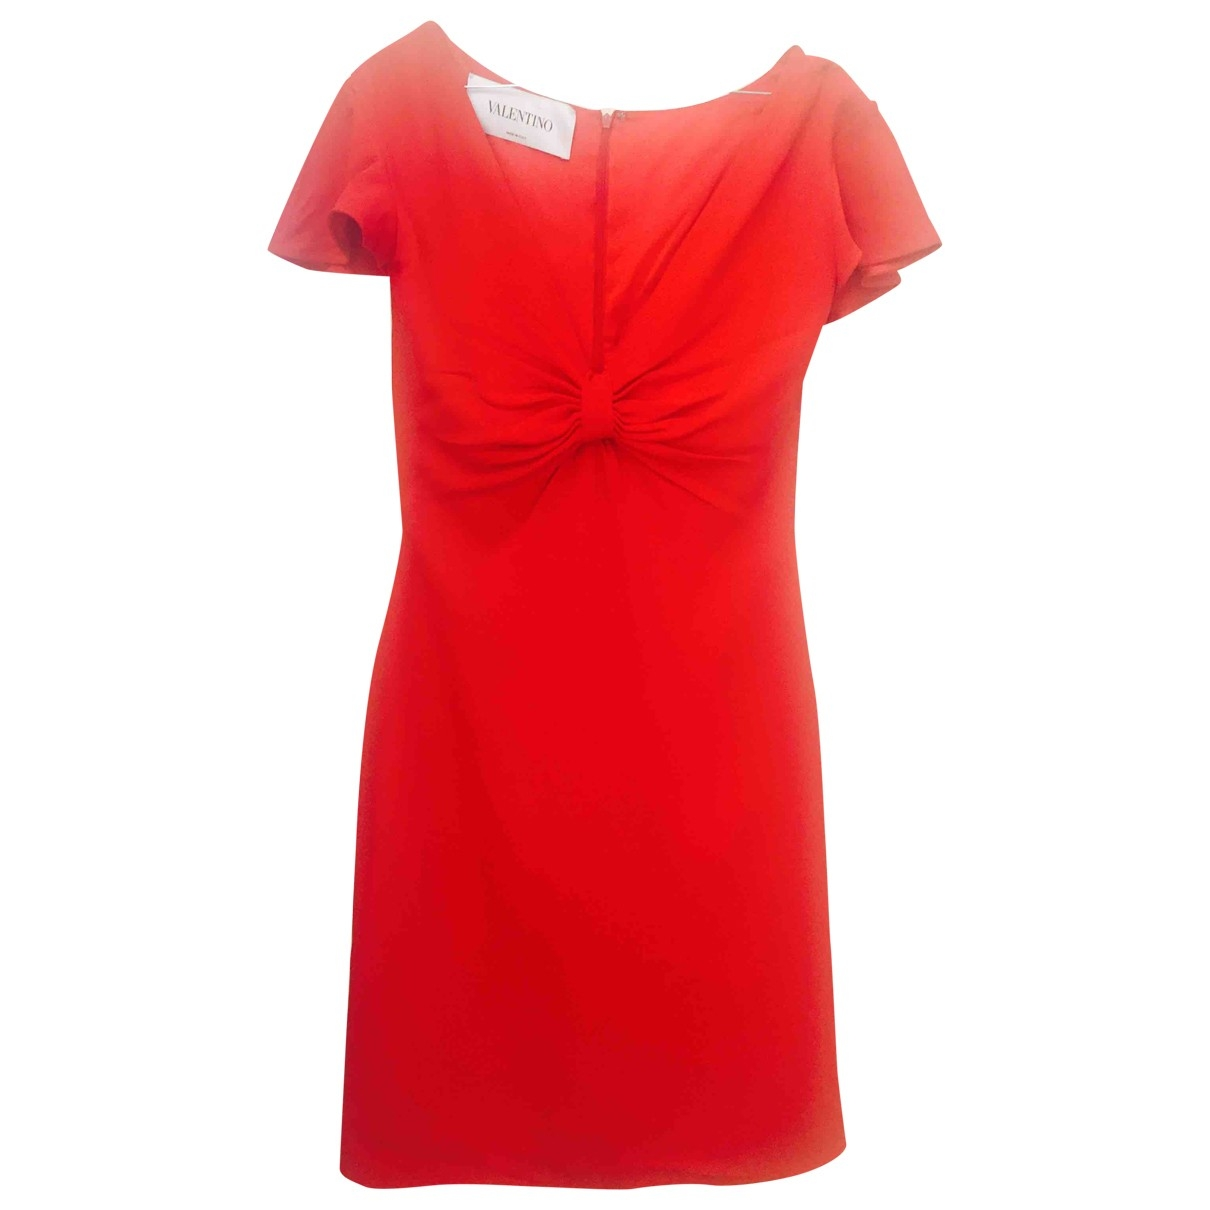 Valentino Garavani \N Red dress for Women 44 IT